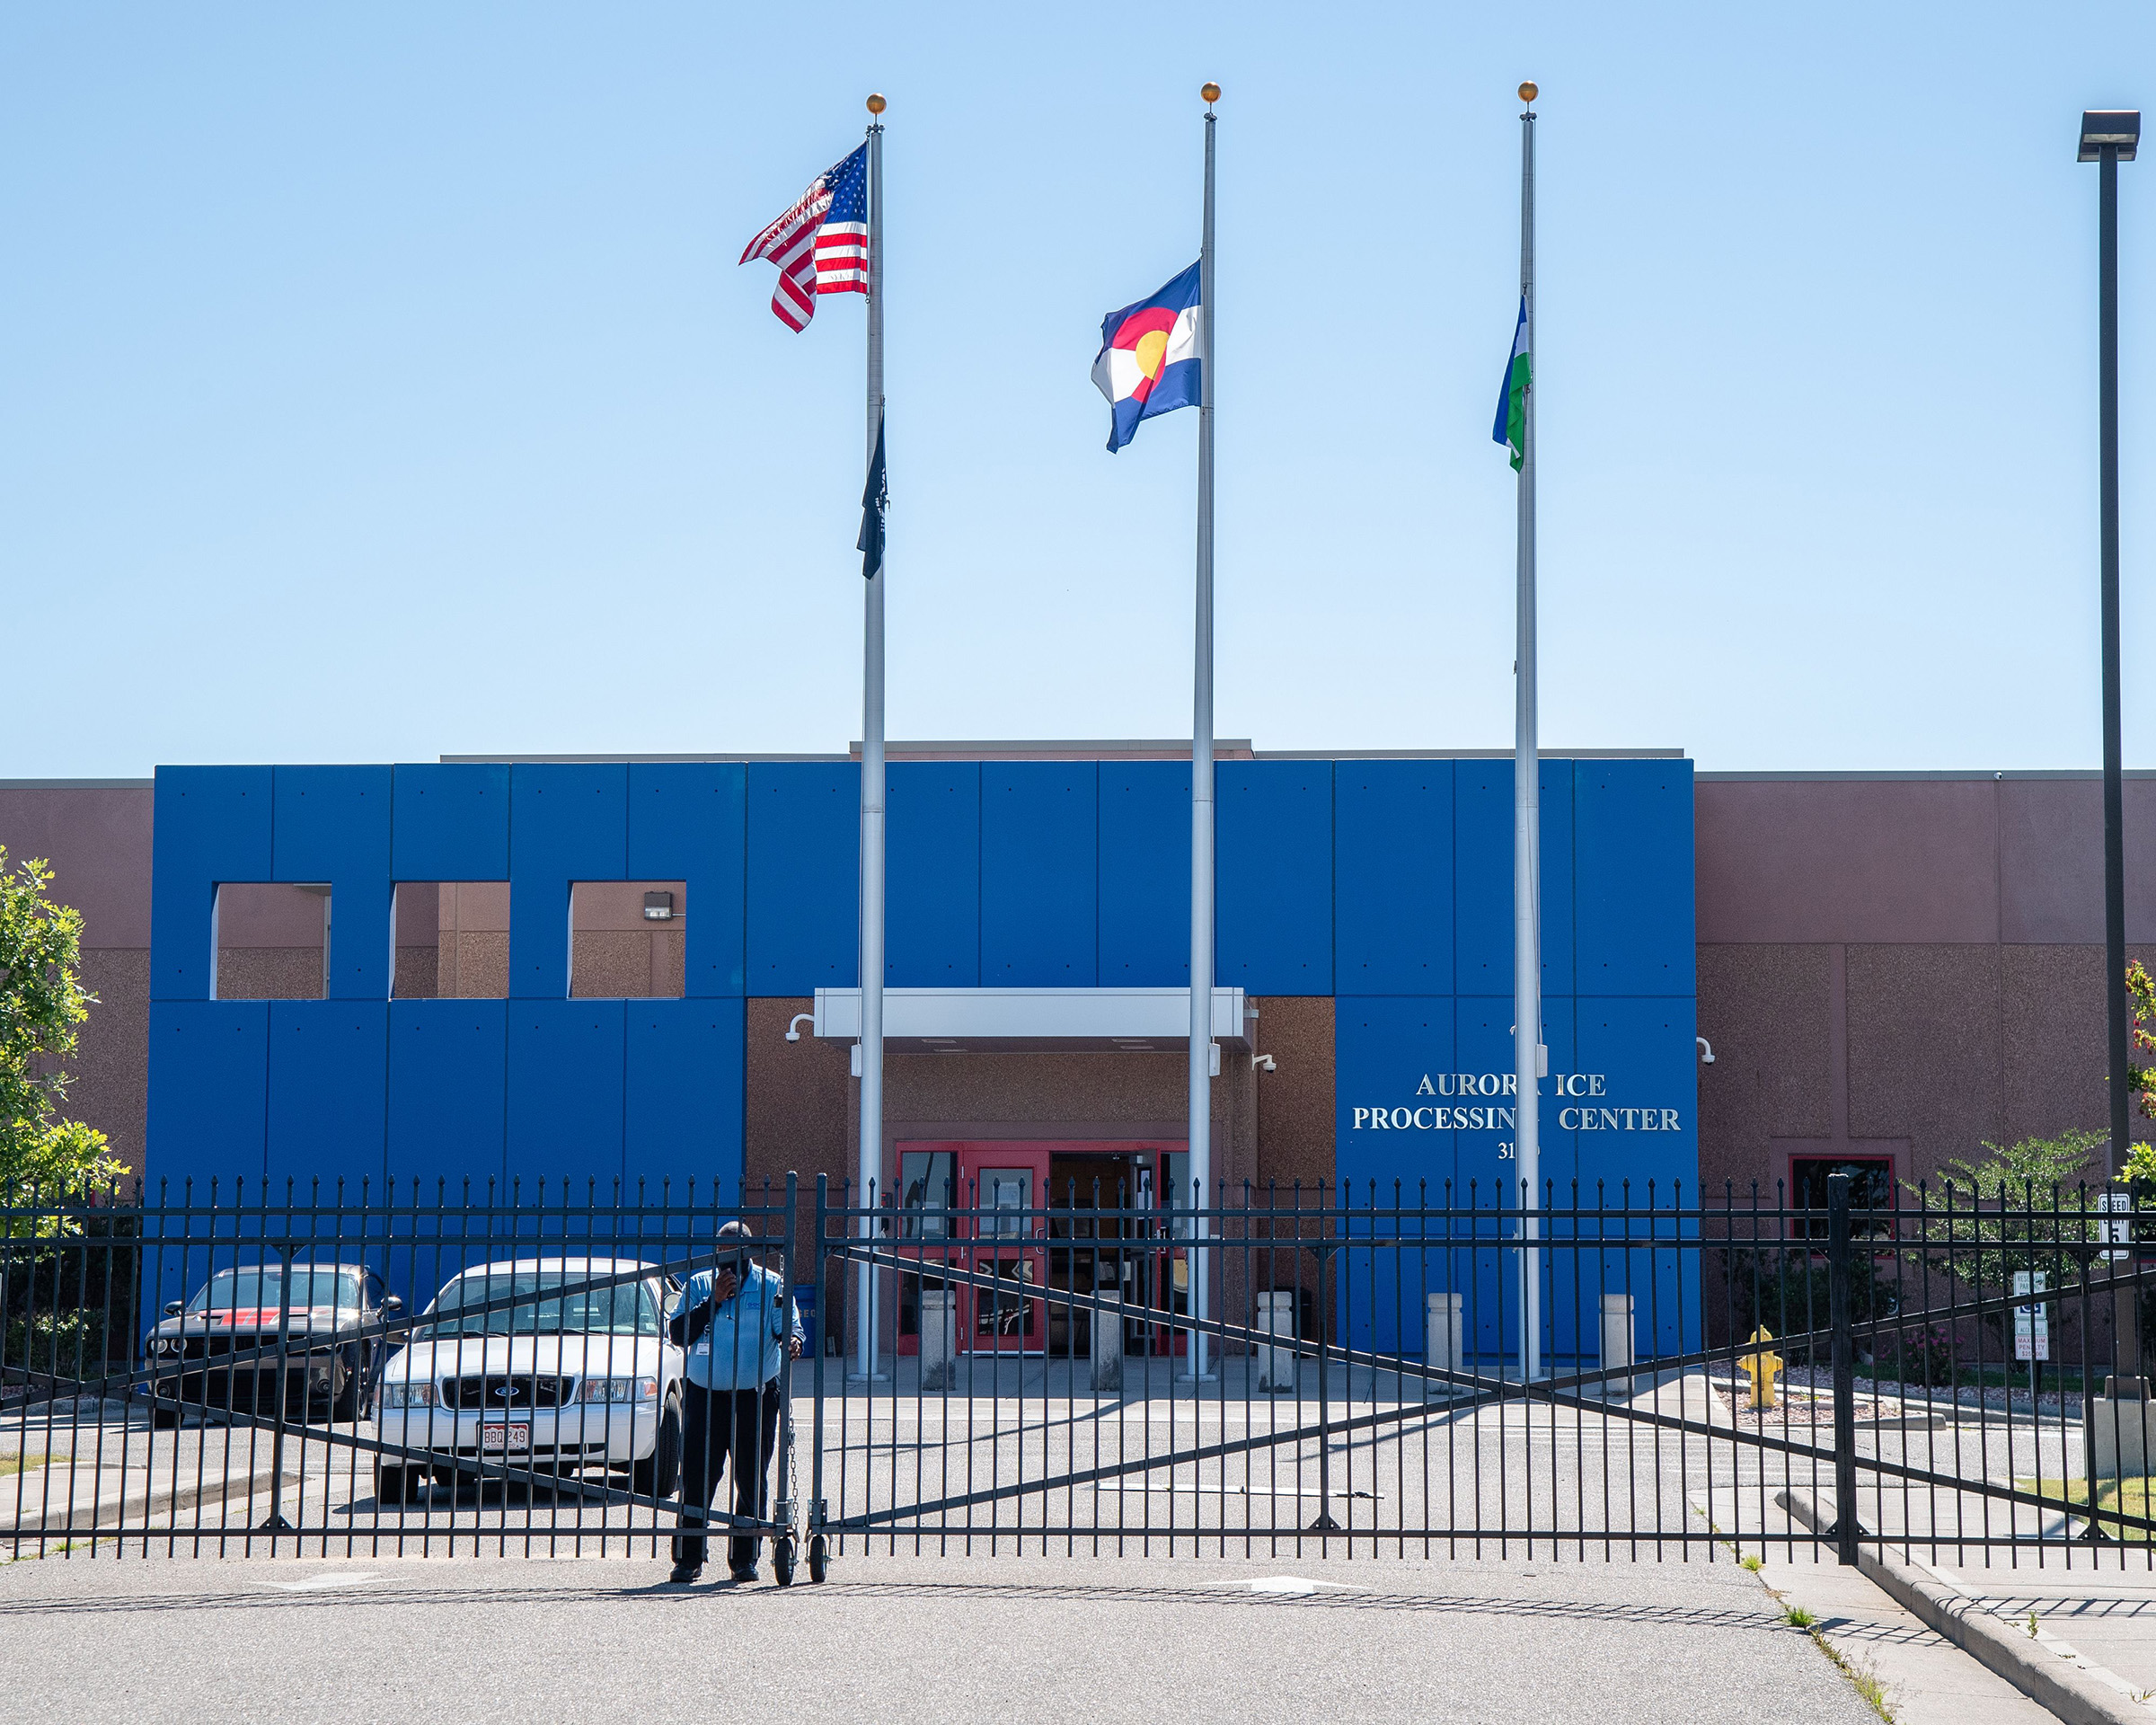 A security guard stands outside of the Aurora ICE Processing Center in Aurora, Colorado on July 5, 2020.